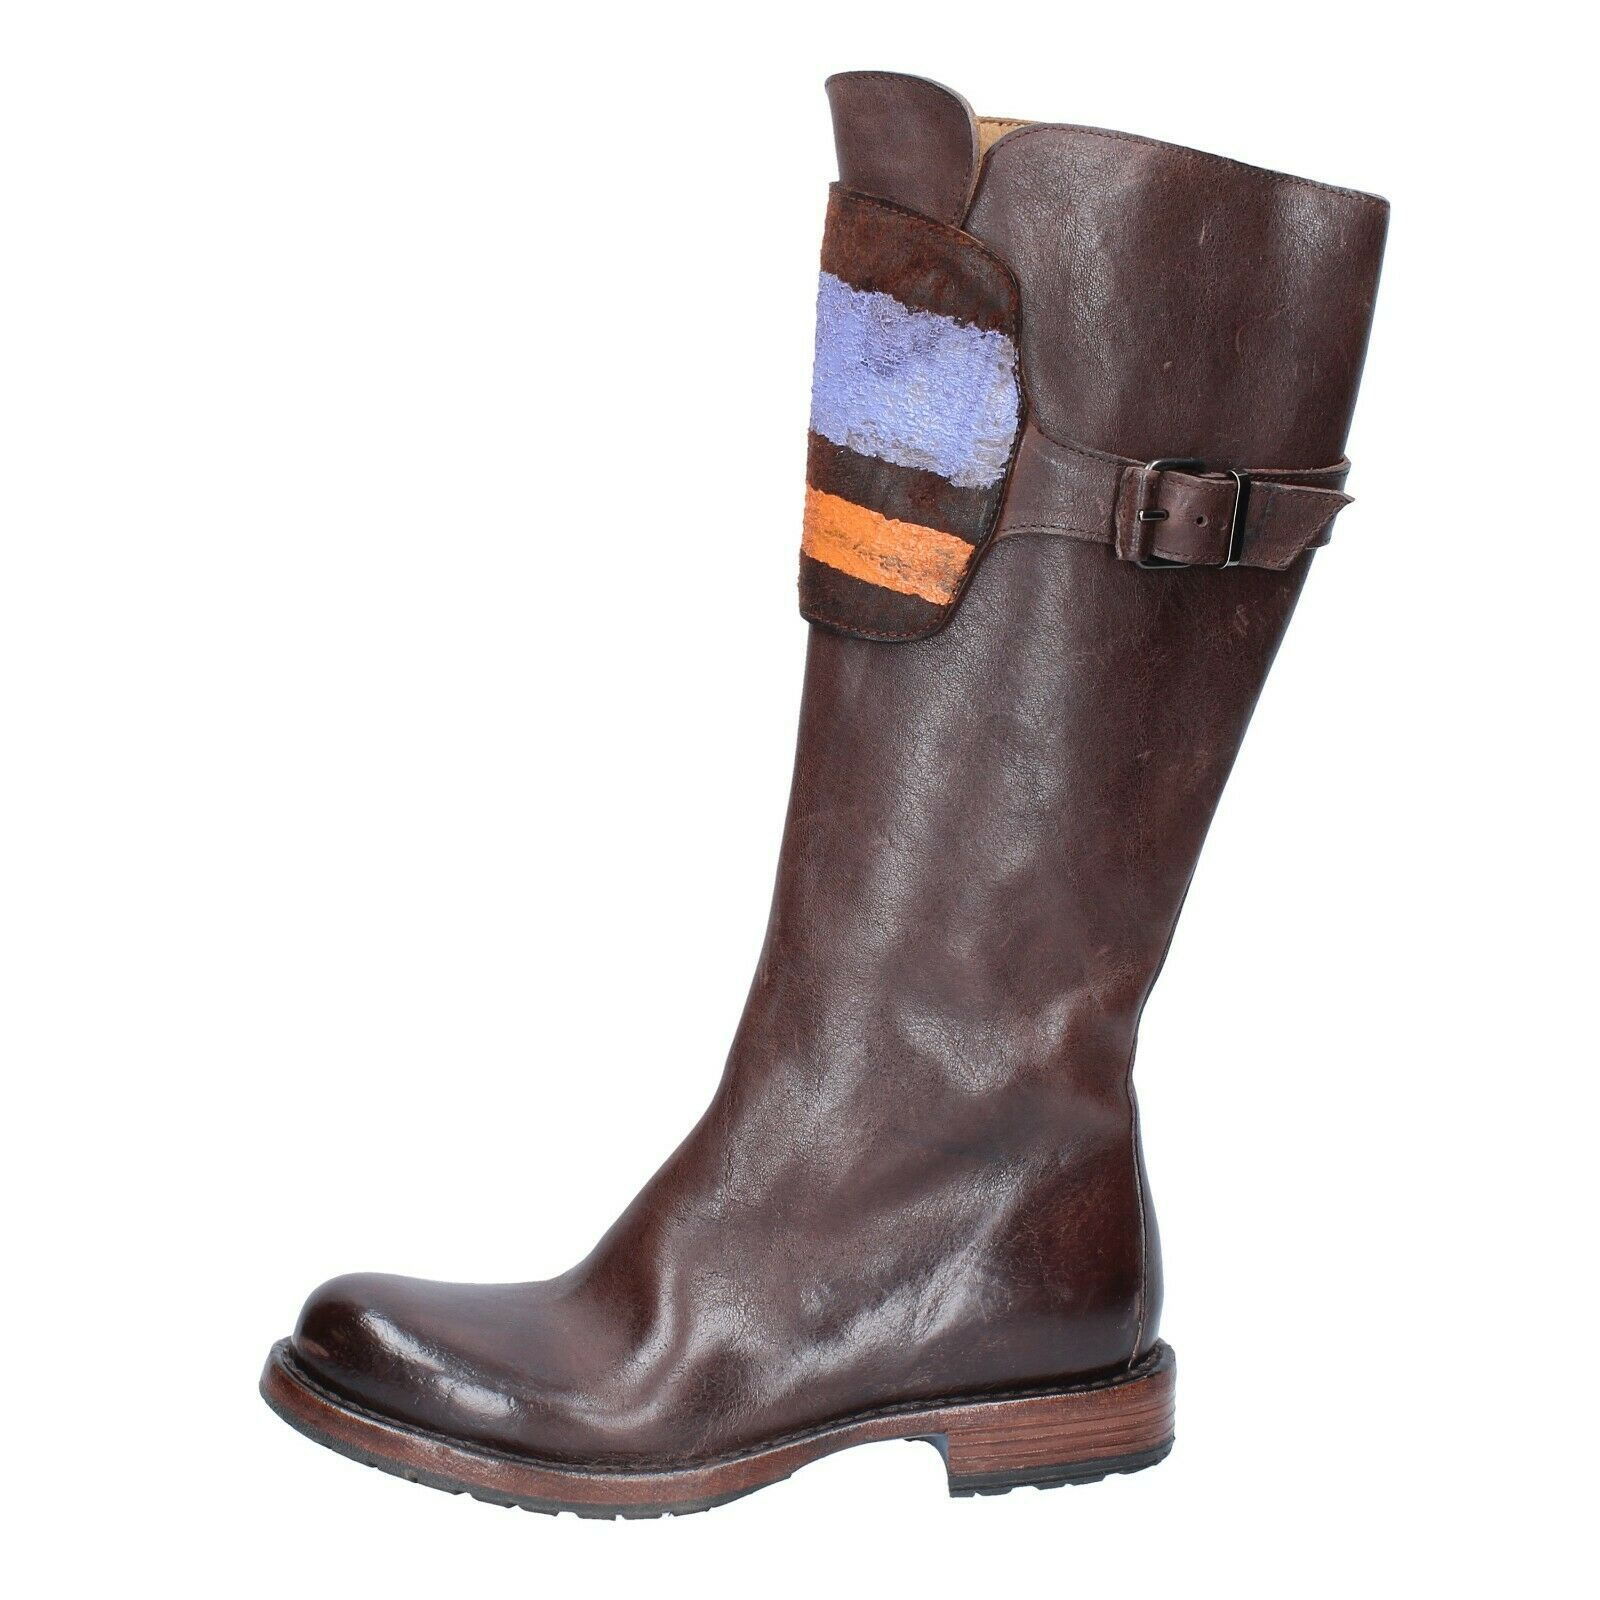 Women's shoes MOMA 4 (EU 37) boots brown leather BS469